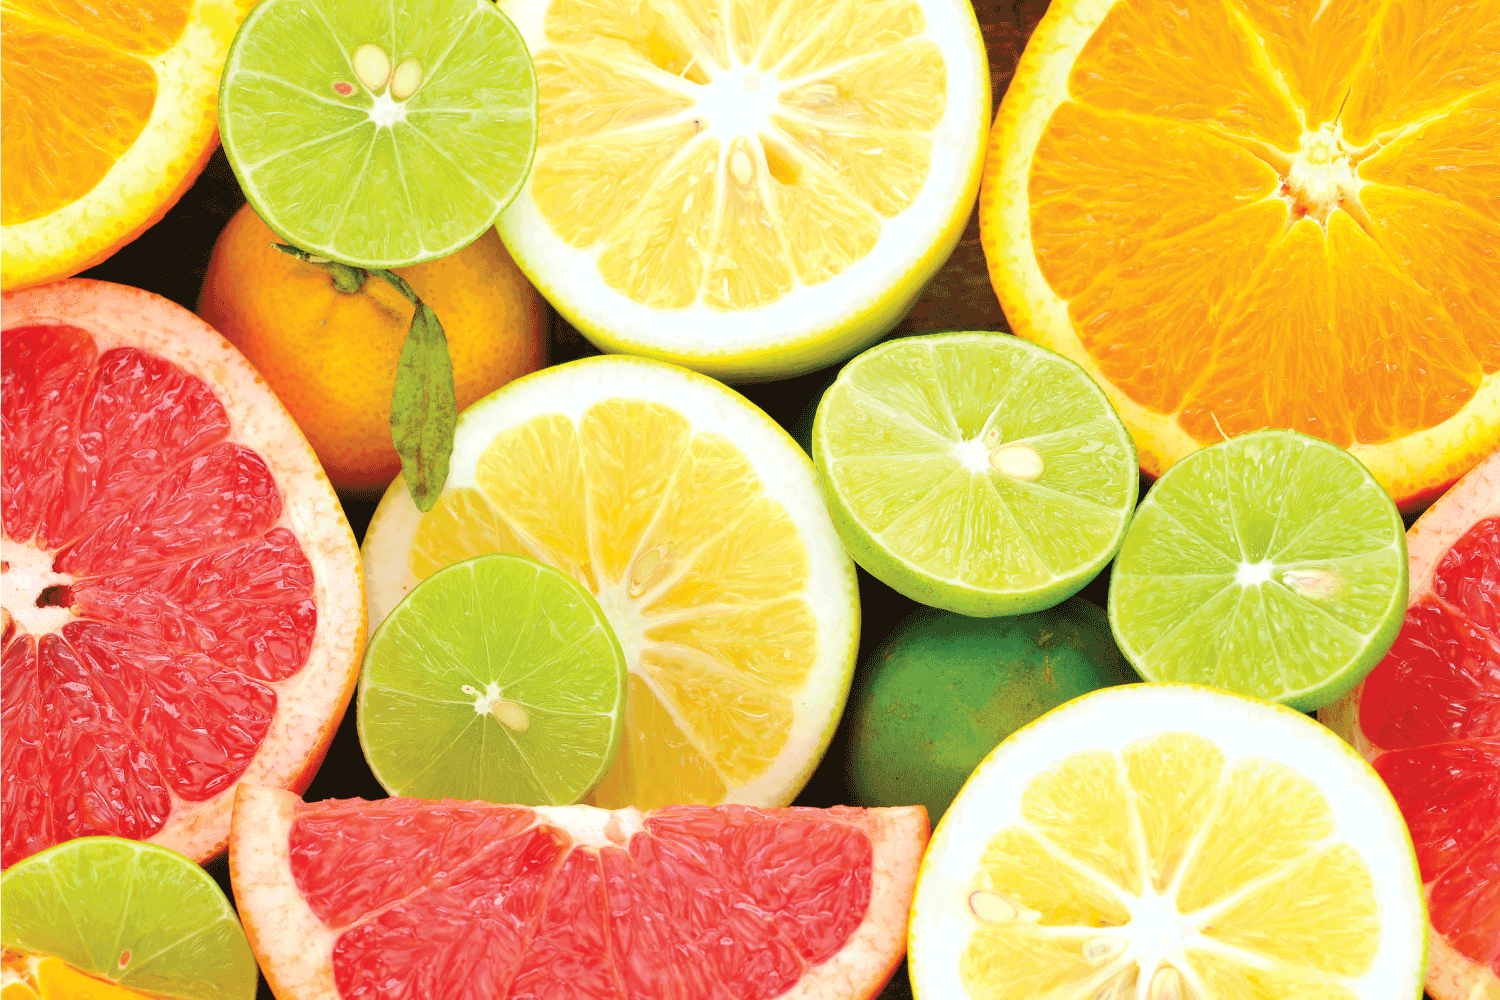 fresh citrus fruits cut up and placed on a table